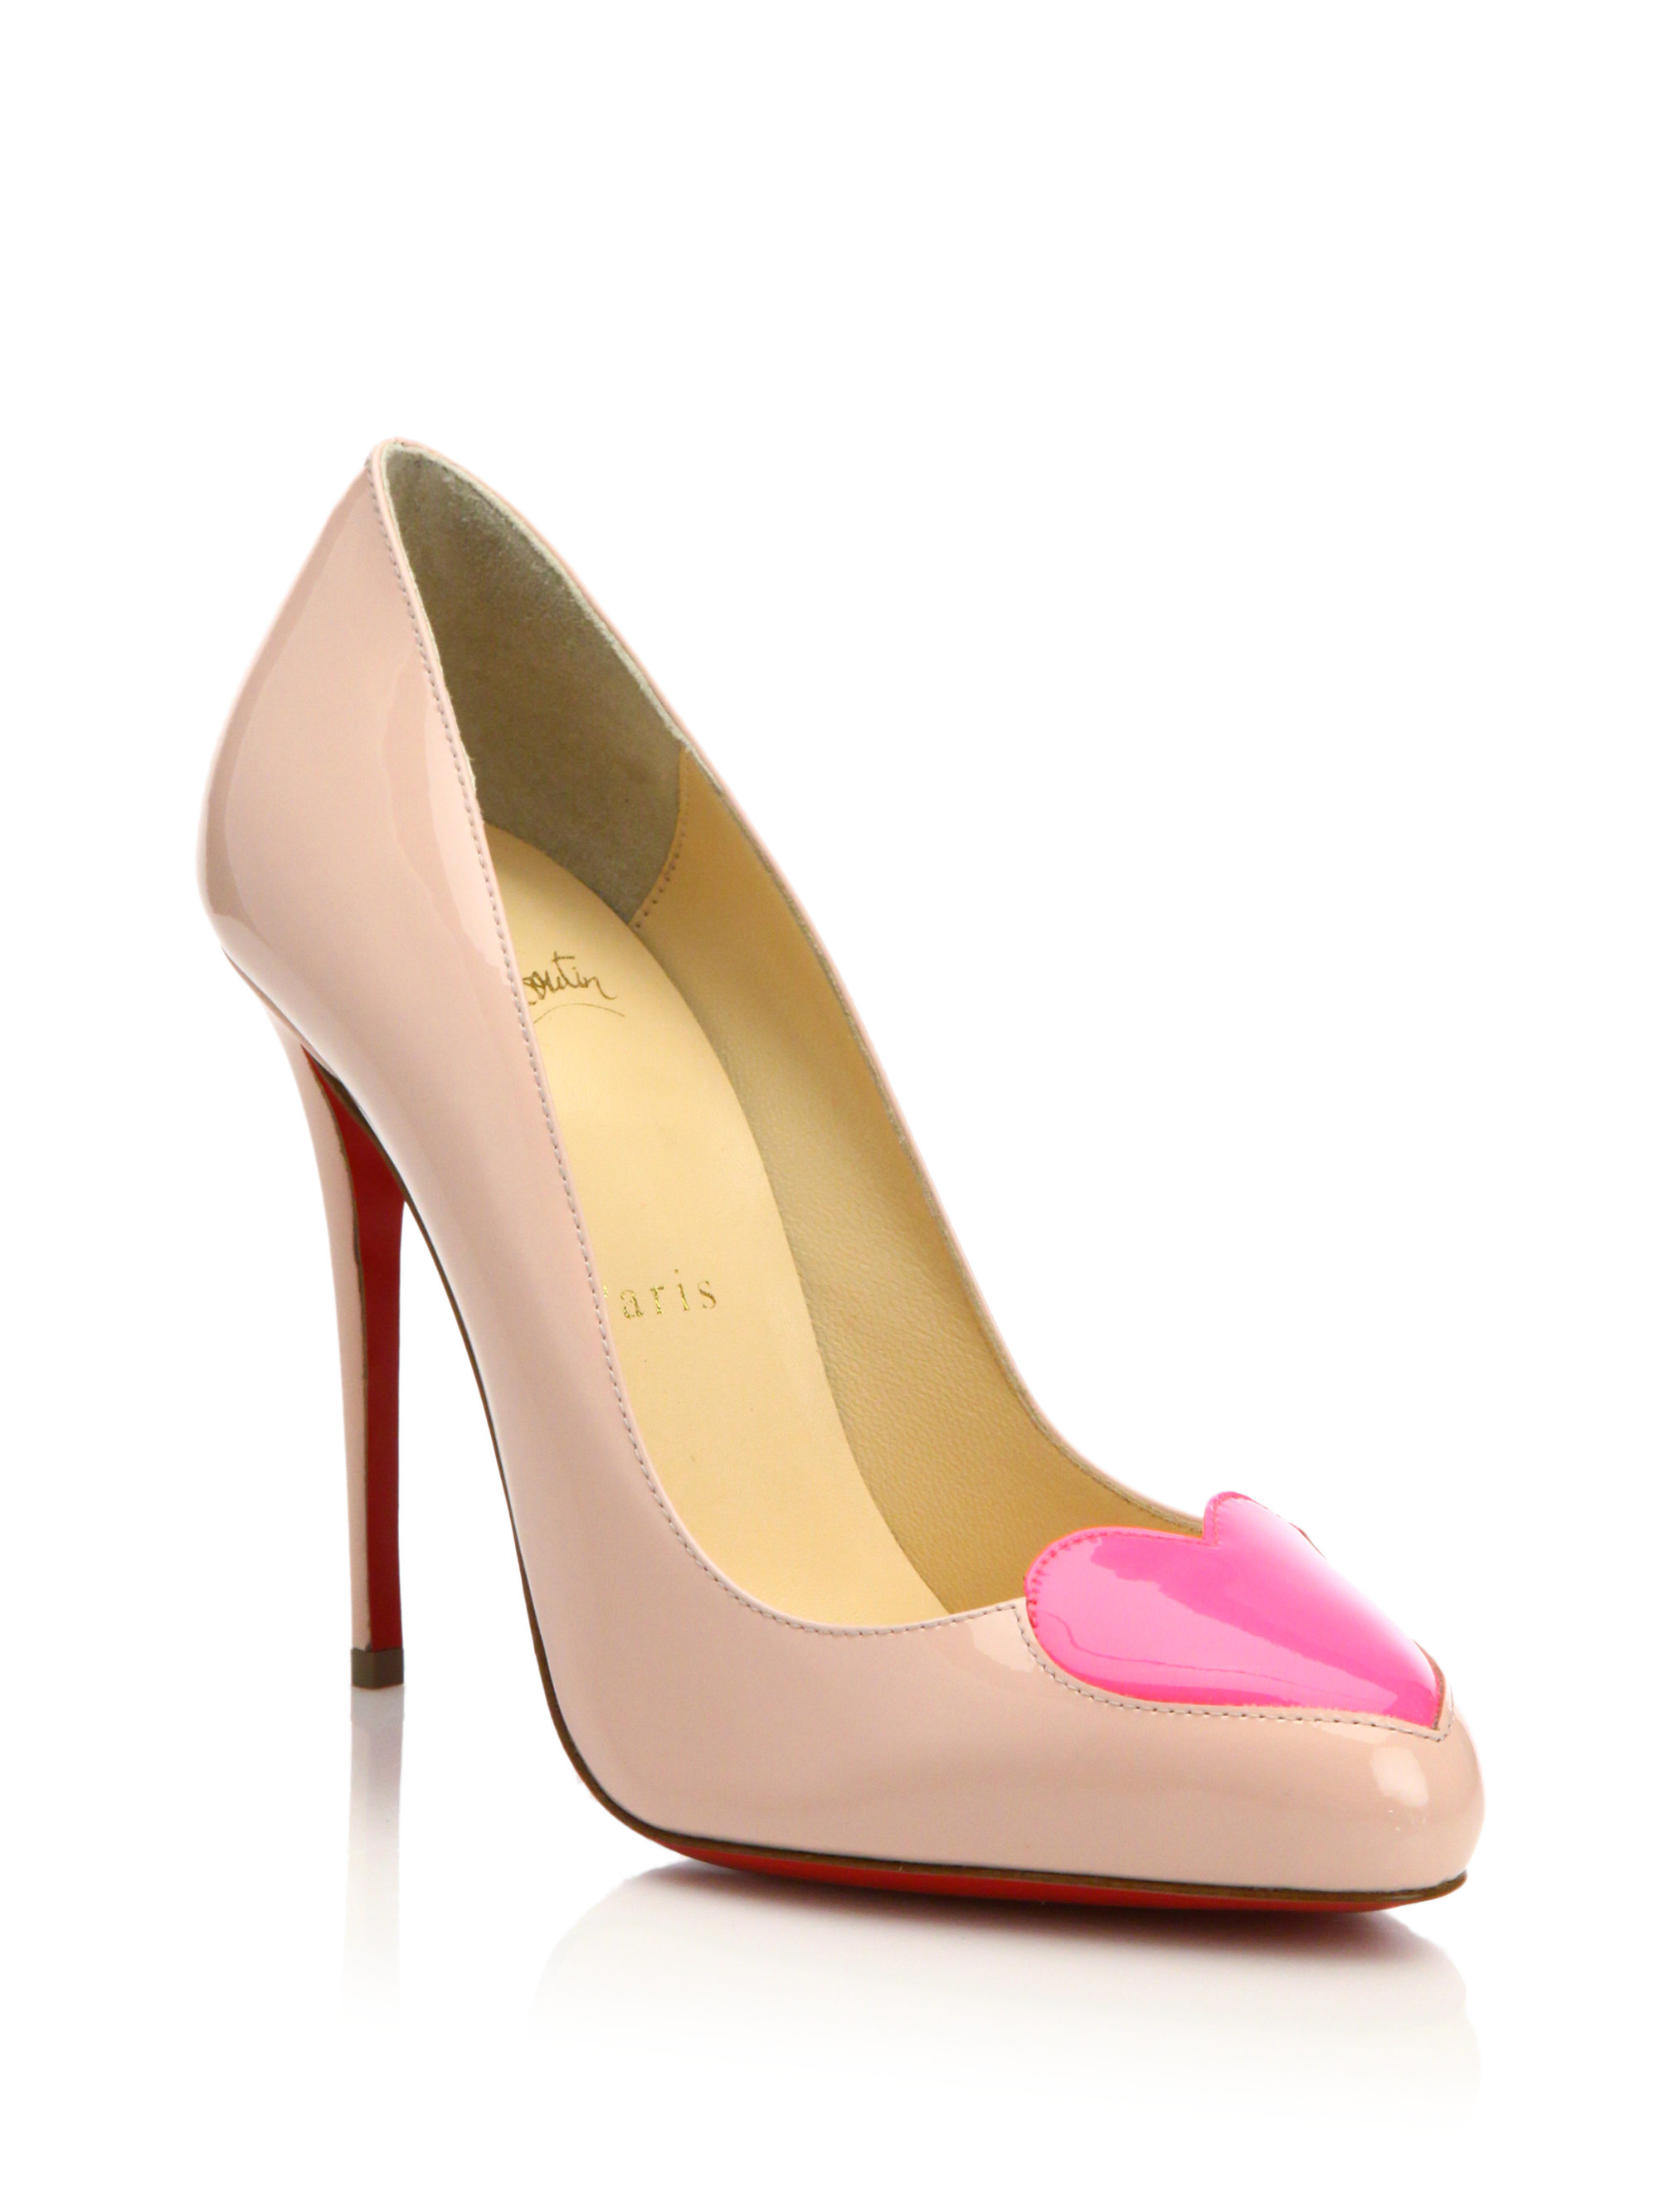 51b8cbc2d795 ... wholesale lyst christian louboutin doracora heart patent leather pumps  in pink aac45 bdaea